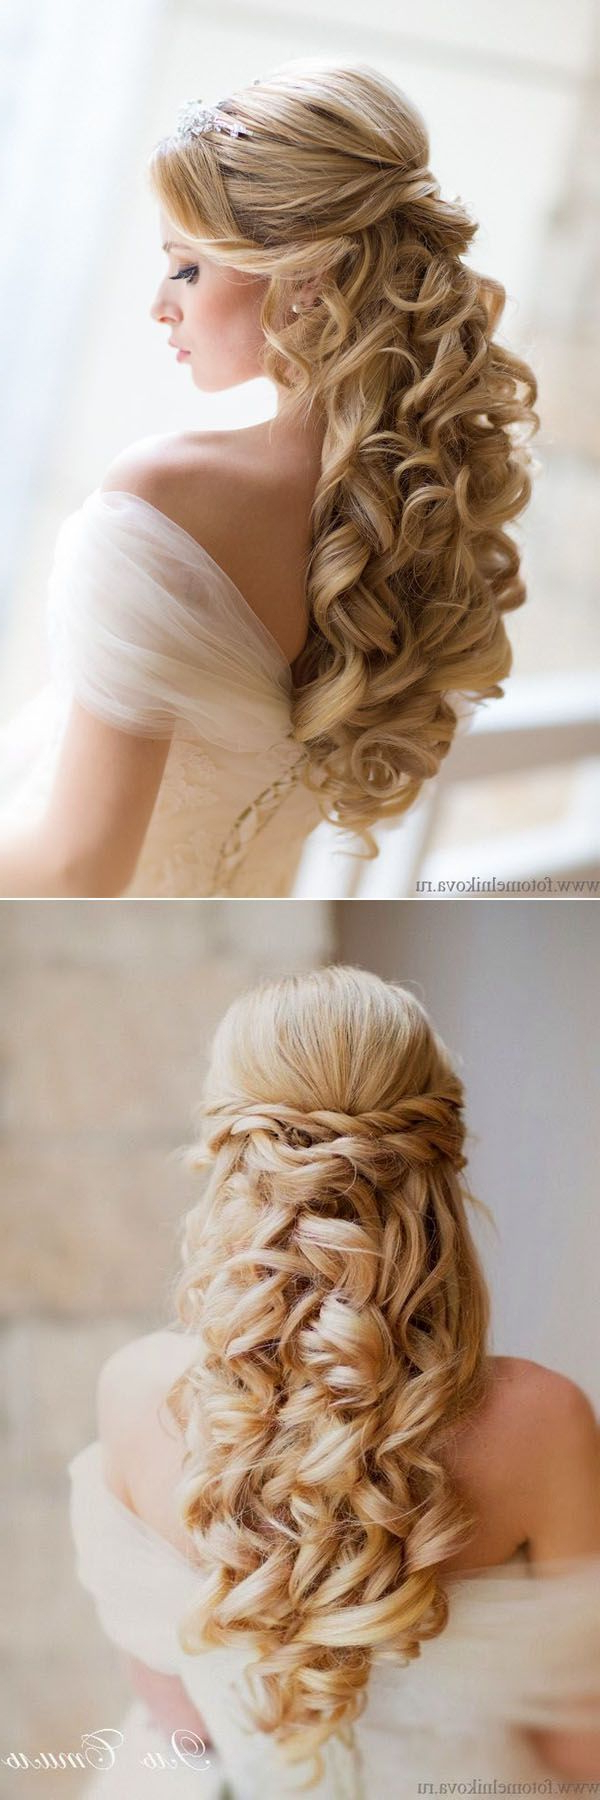 20 Awesome Half Up Half Down Wedding Hairstyle Ideas (Gallery 7 of 20)